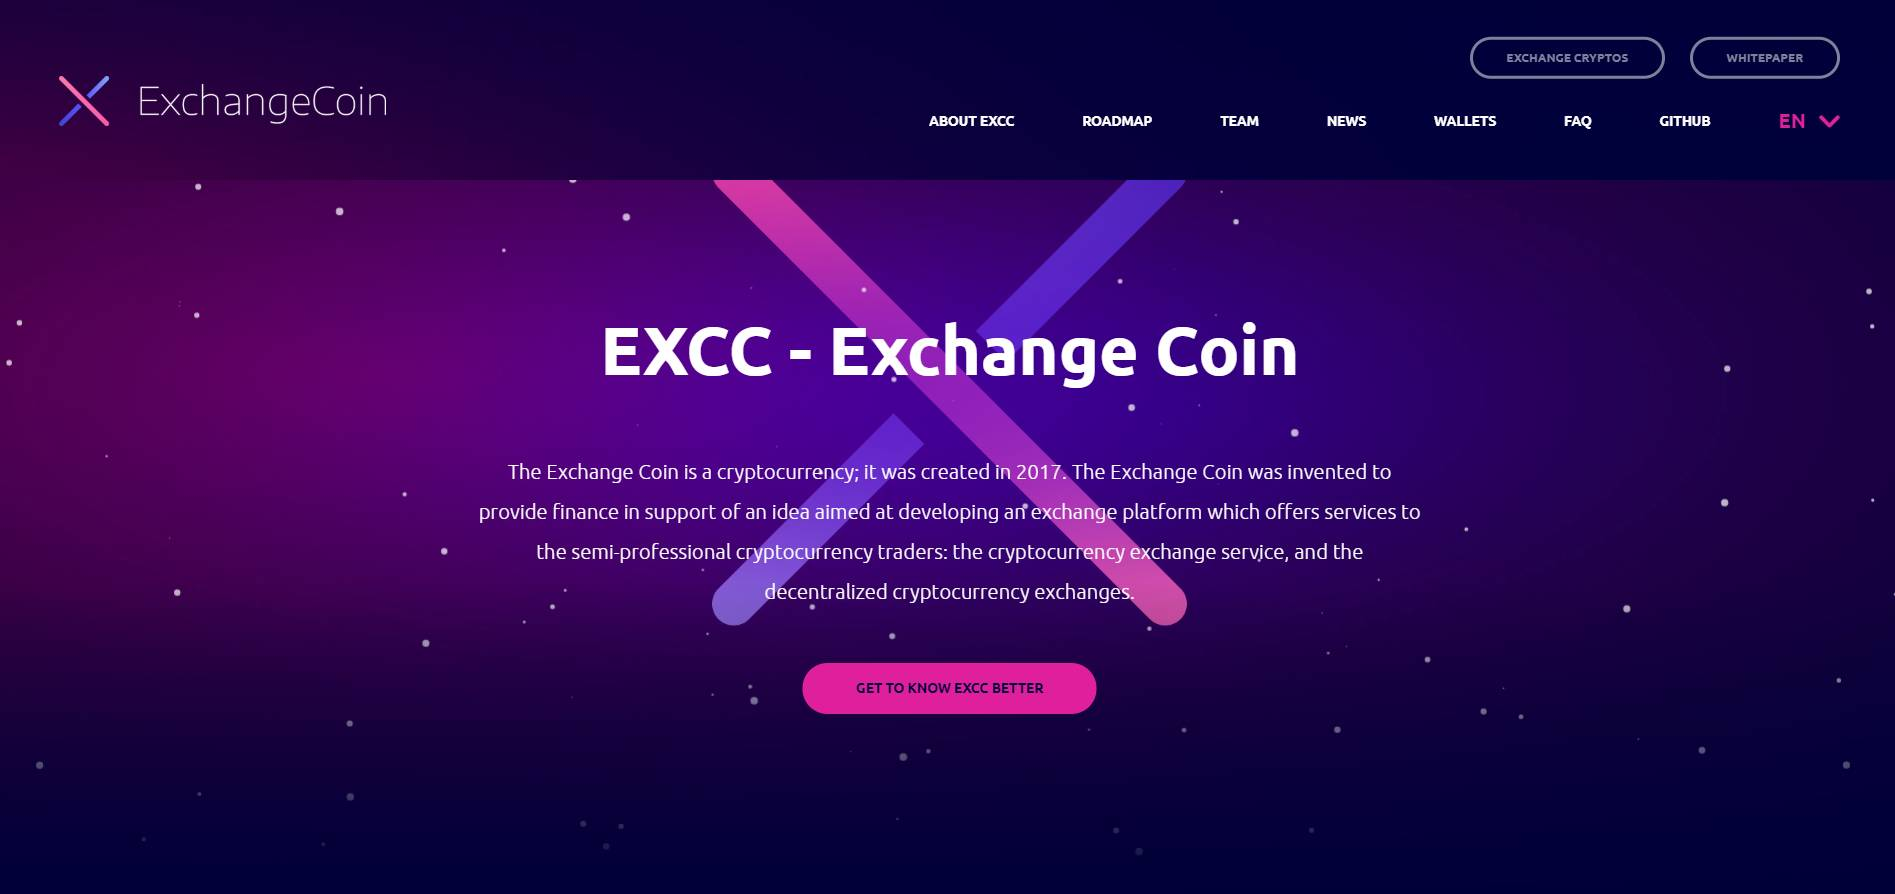 Exchange Coin